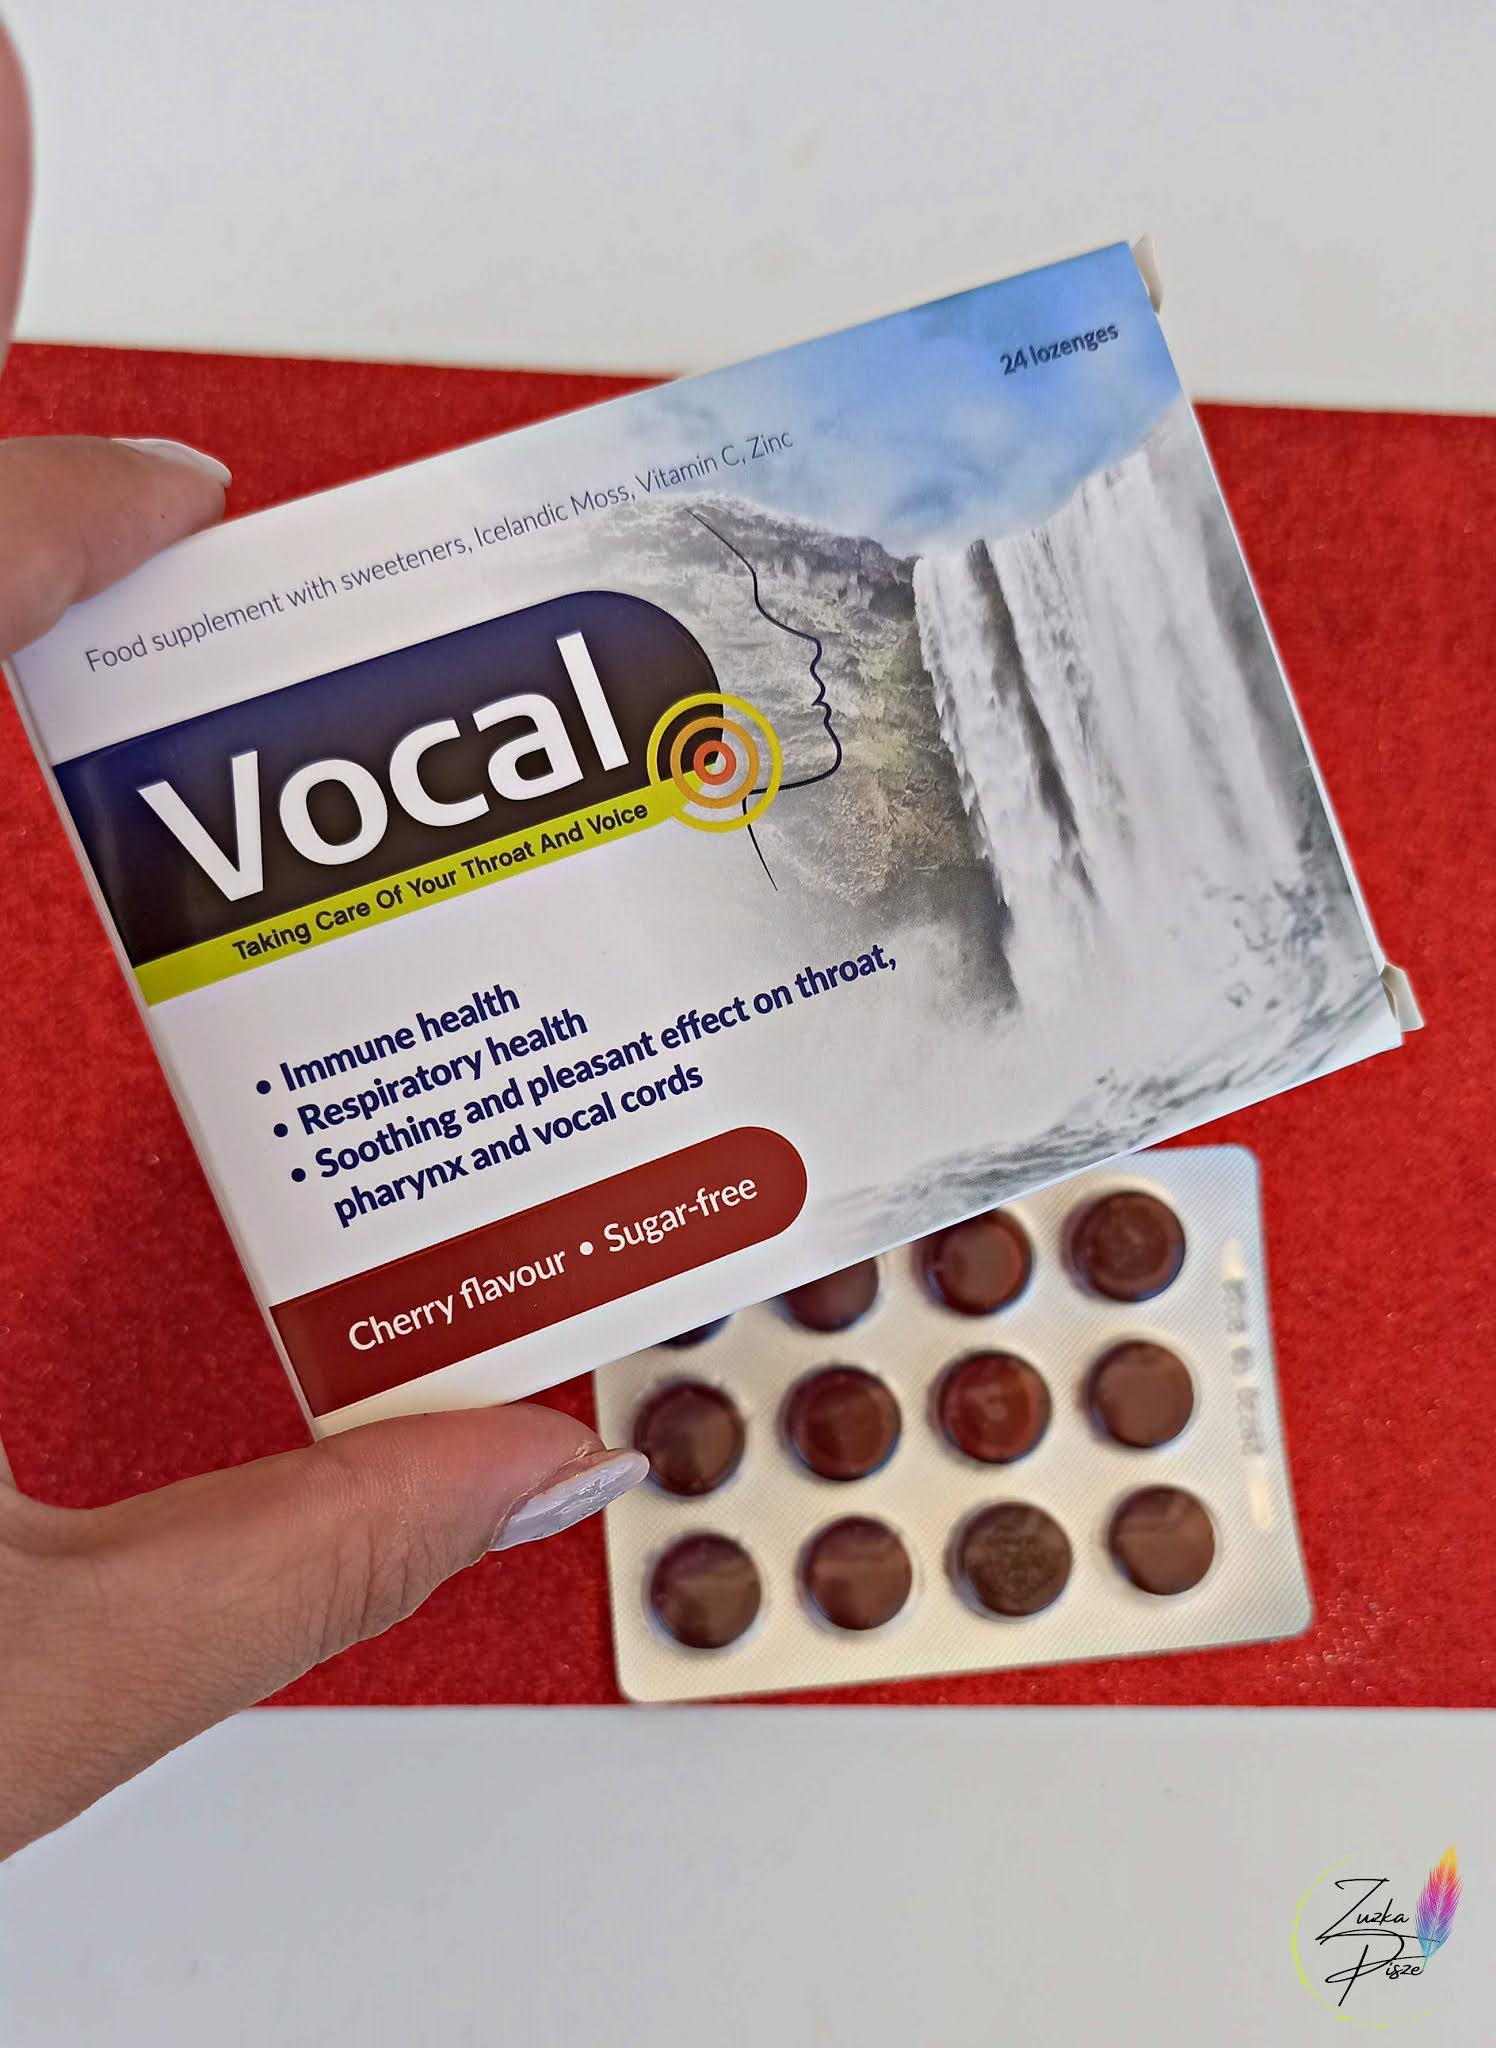 Vocal wiśnia Taking care od your throat and voice